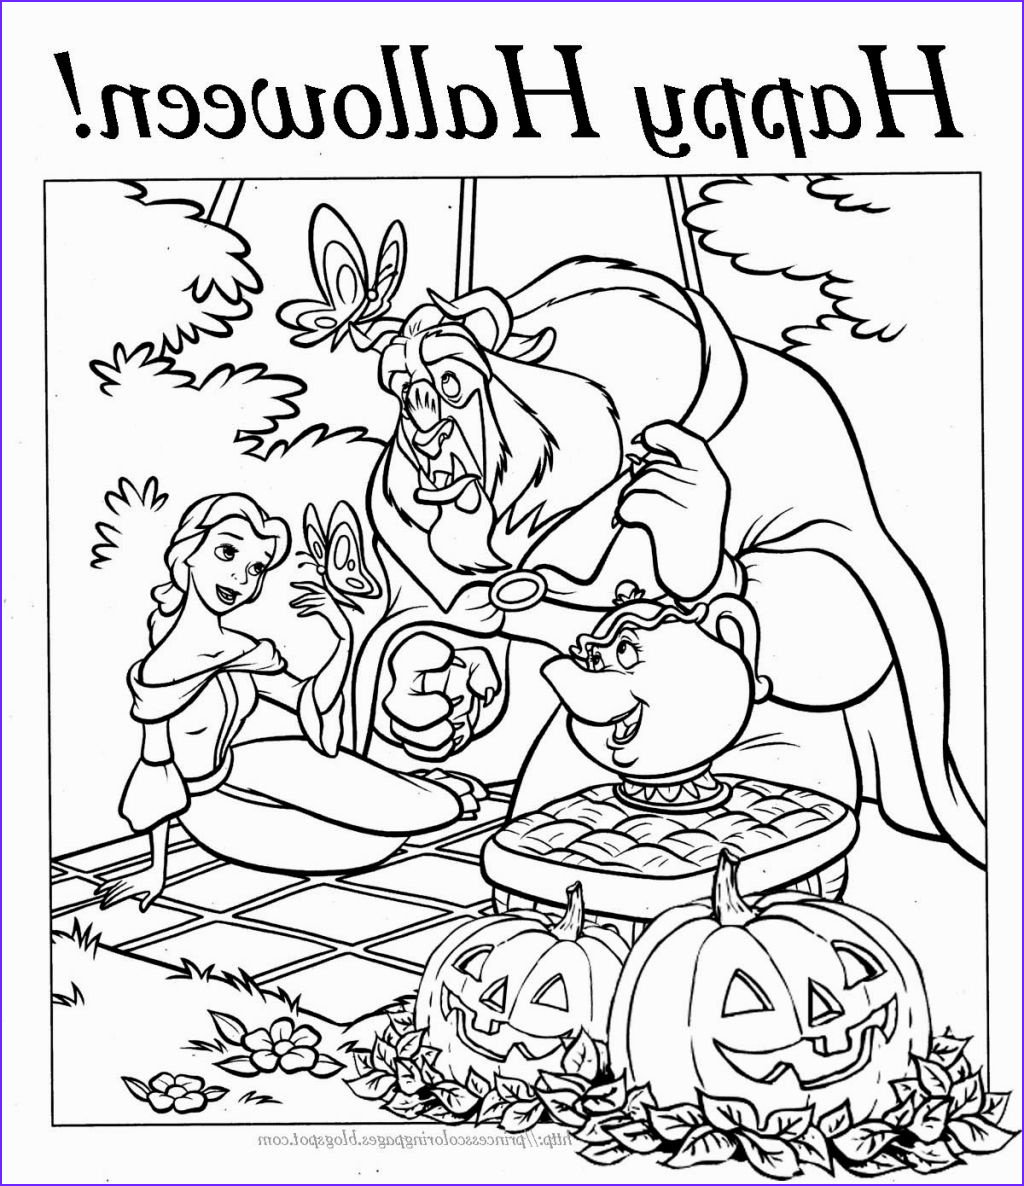 Disney Princess Halloween Coloring Pages Luxury Images Thomas the Train Printable Coloring Pages